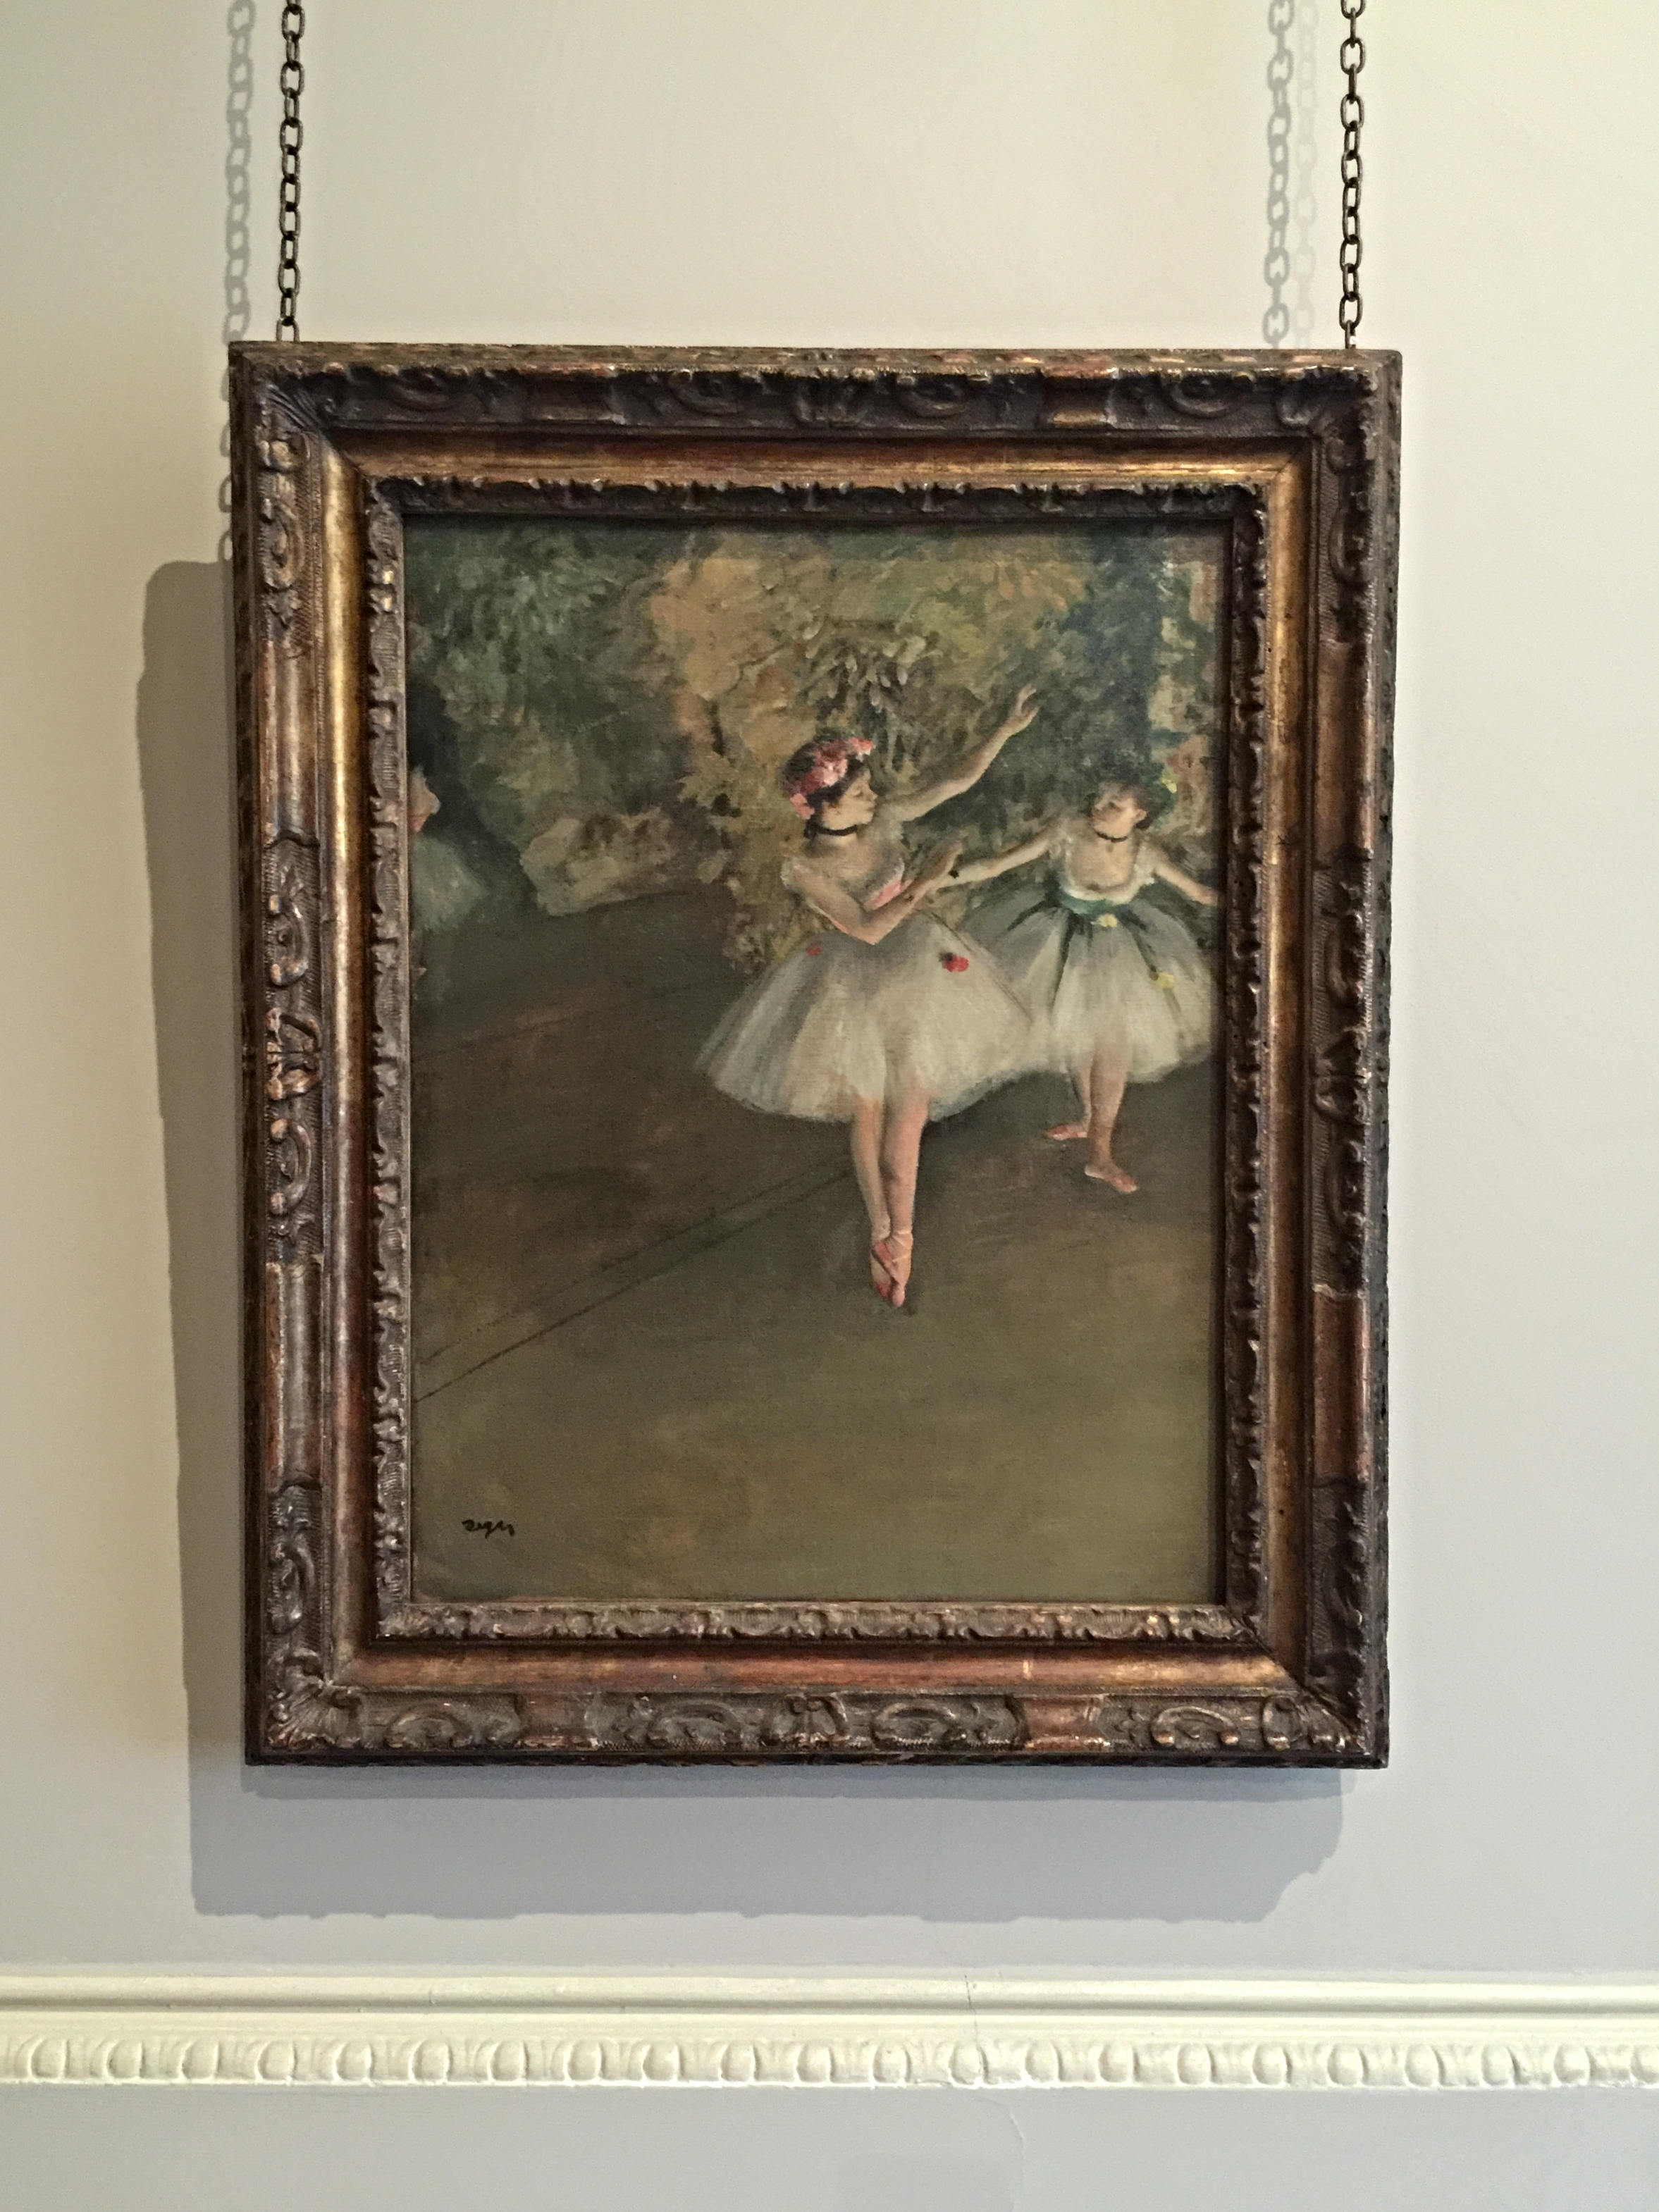 Edgar Degas, Two Dancers on a stage  (1874)